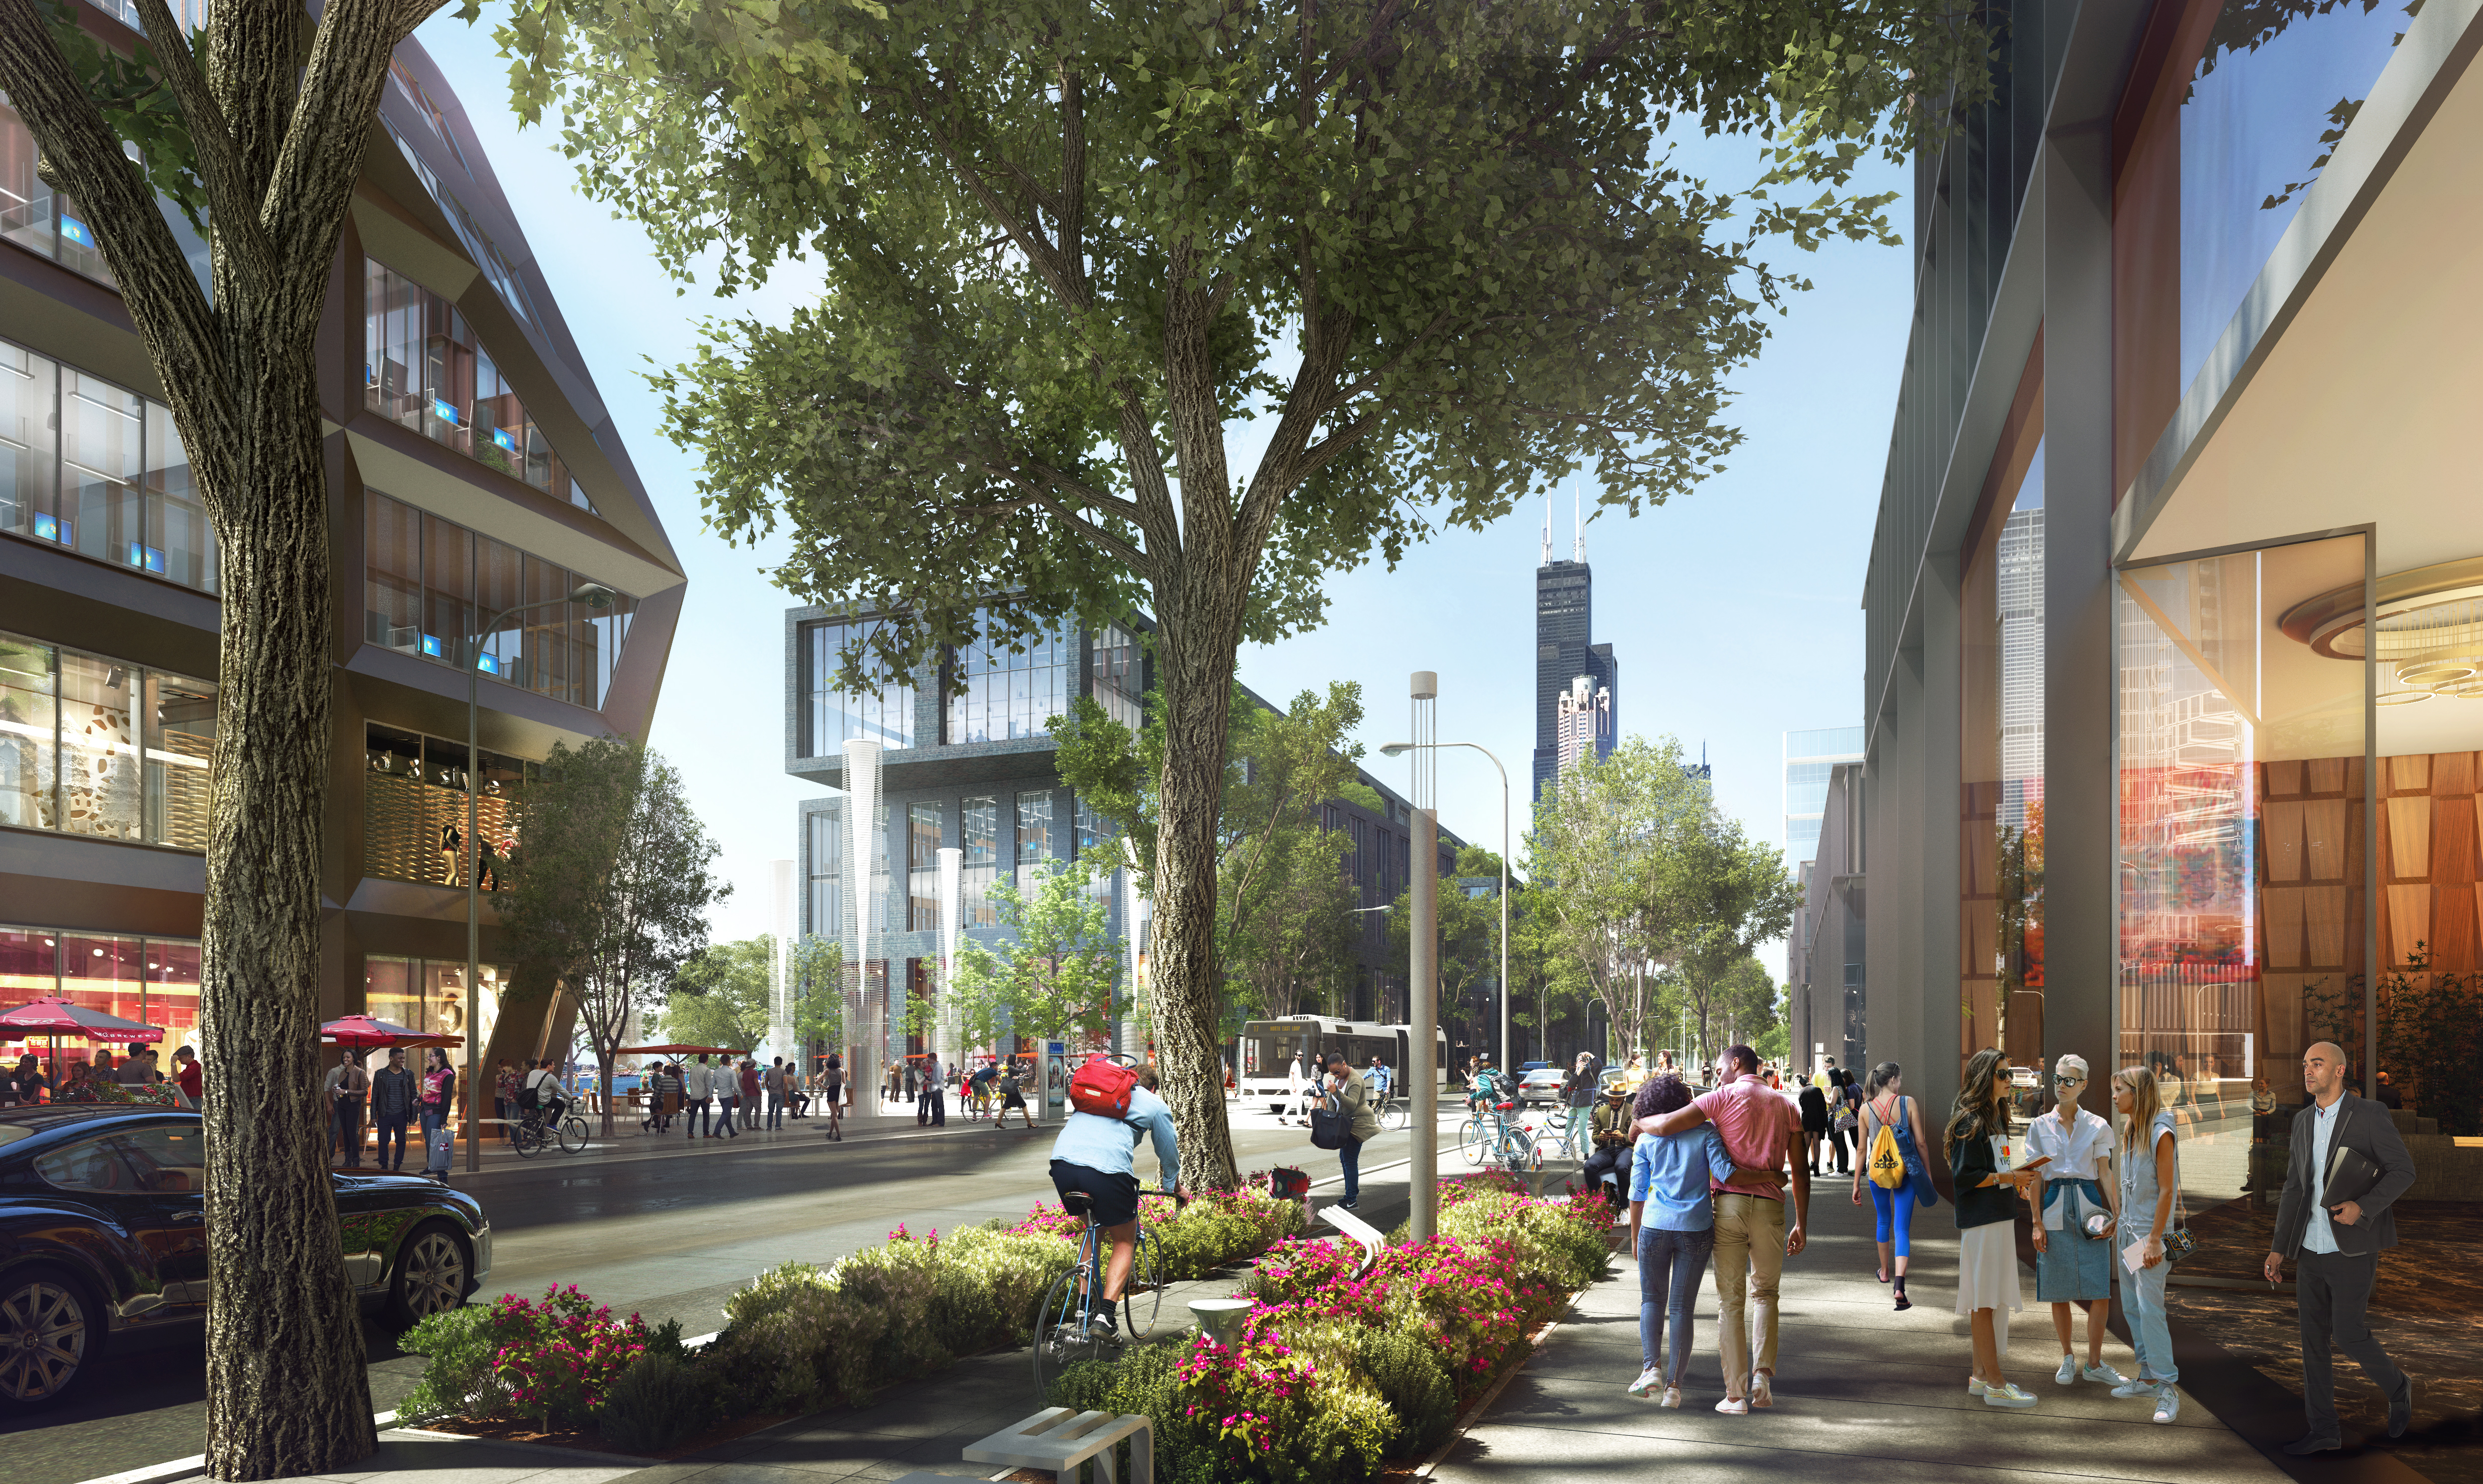 An image of a new road with a bike lane that has landscaping on both sides, a sidewalk with tall trees nearby, and modern glassy and concrete shops. In the distance tall downtown towers.